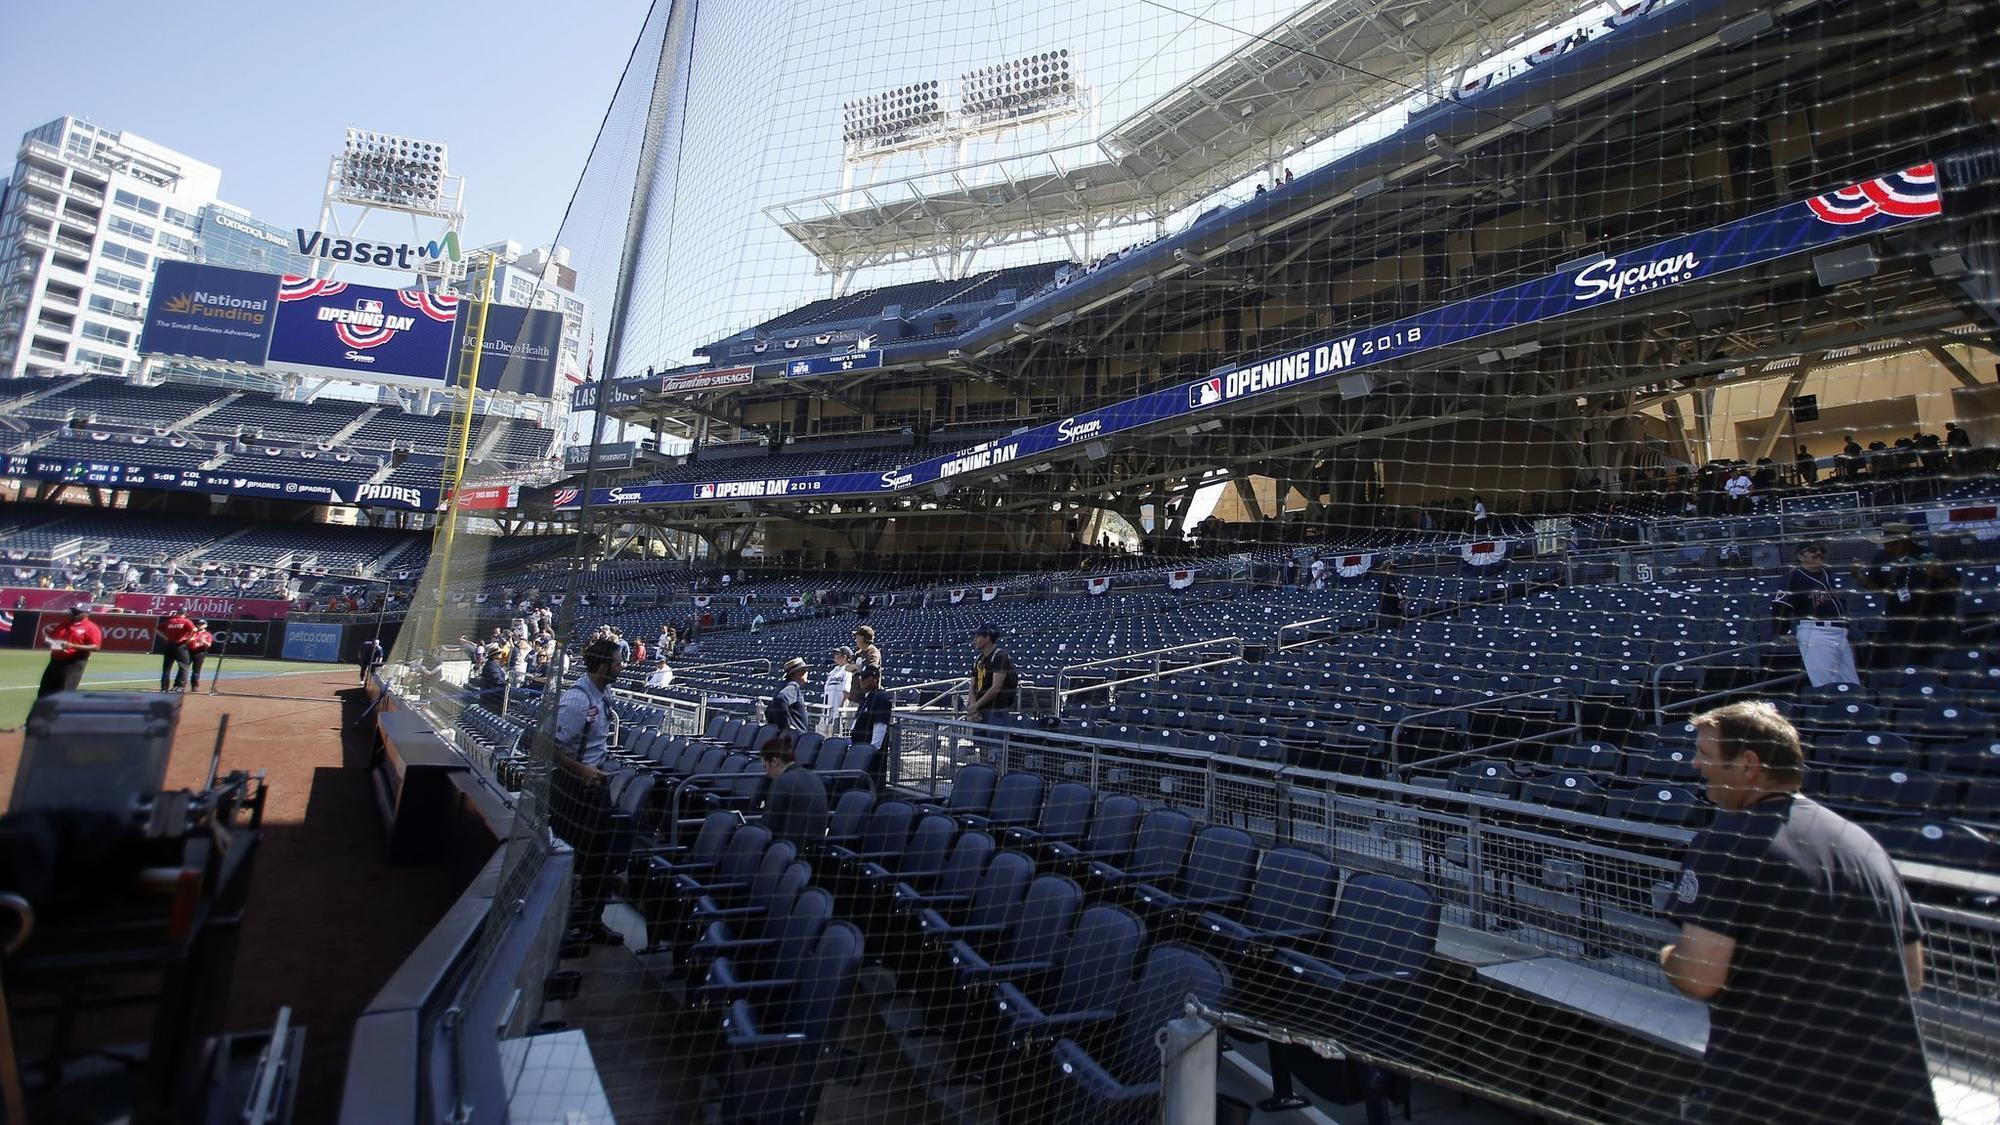 Sd-sp-padres-fans-react-to-extended-netting-at-petco-park-0330